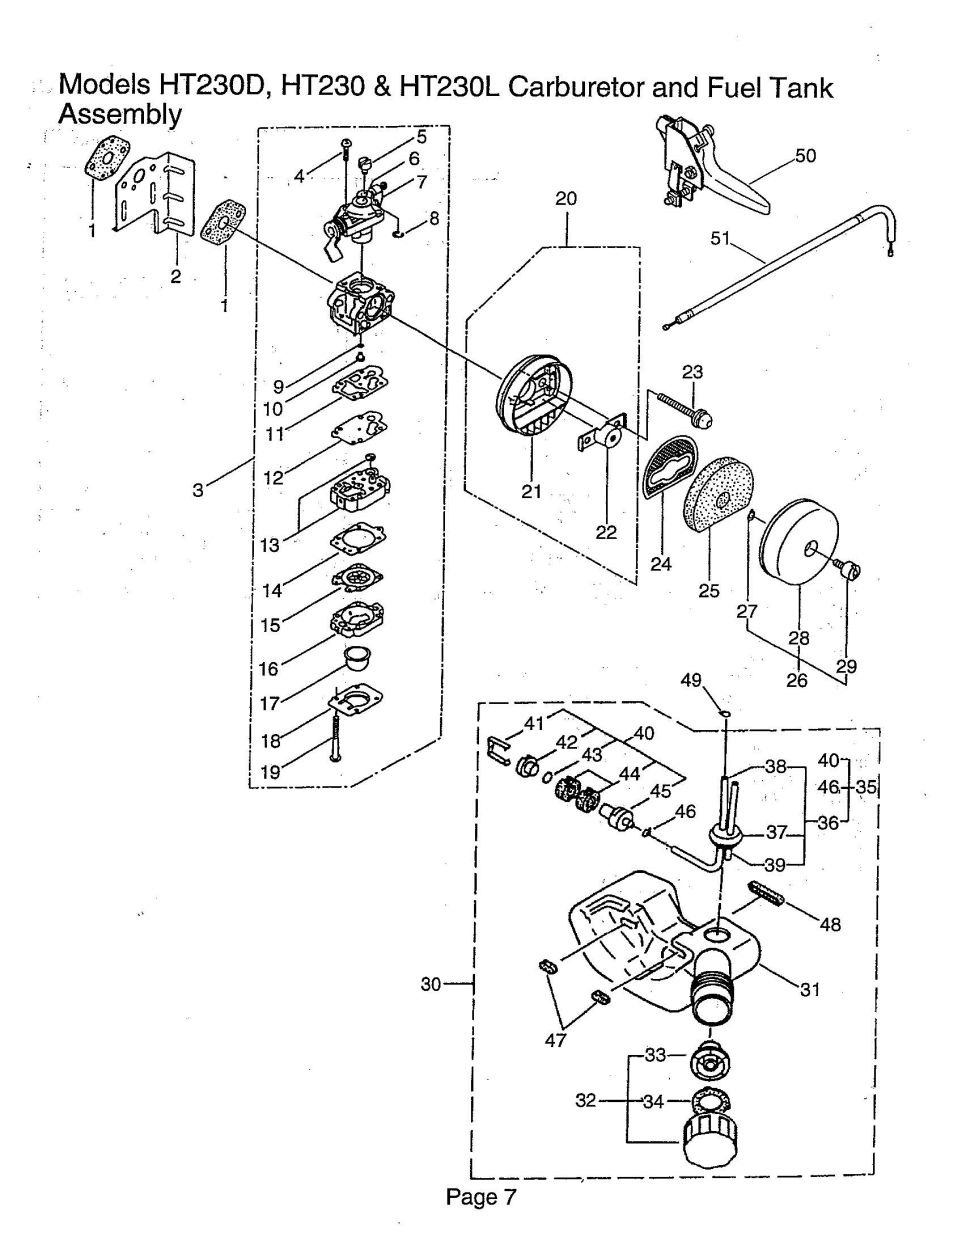 2 Cycle Engine Carburetor Adjustment Tool additionally Weed Eater Pl500 Type Gas Trimmer Parts C 17589 17626 18123 in addition Echo Weed Wacker Parts Diagram together with Carburetor together with Briggs And Stratton Carburetor Spring Diagram. on weed eater carburetor diaphragm diagram